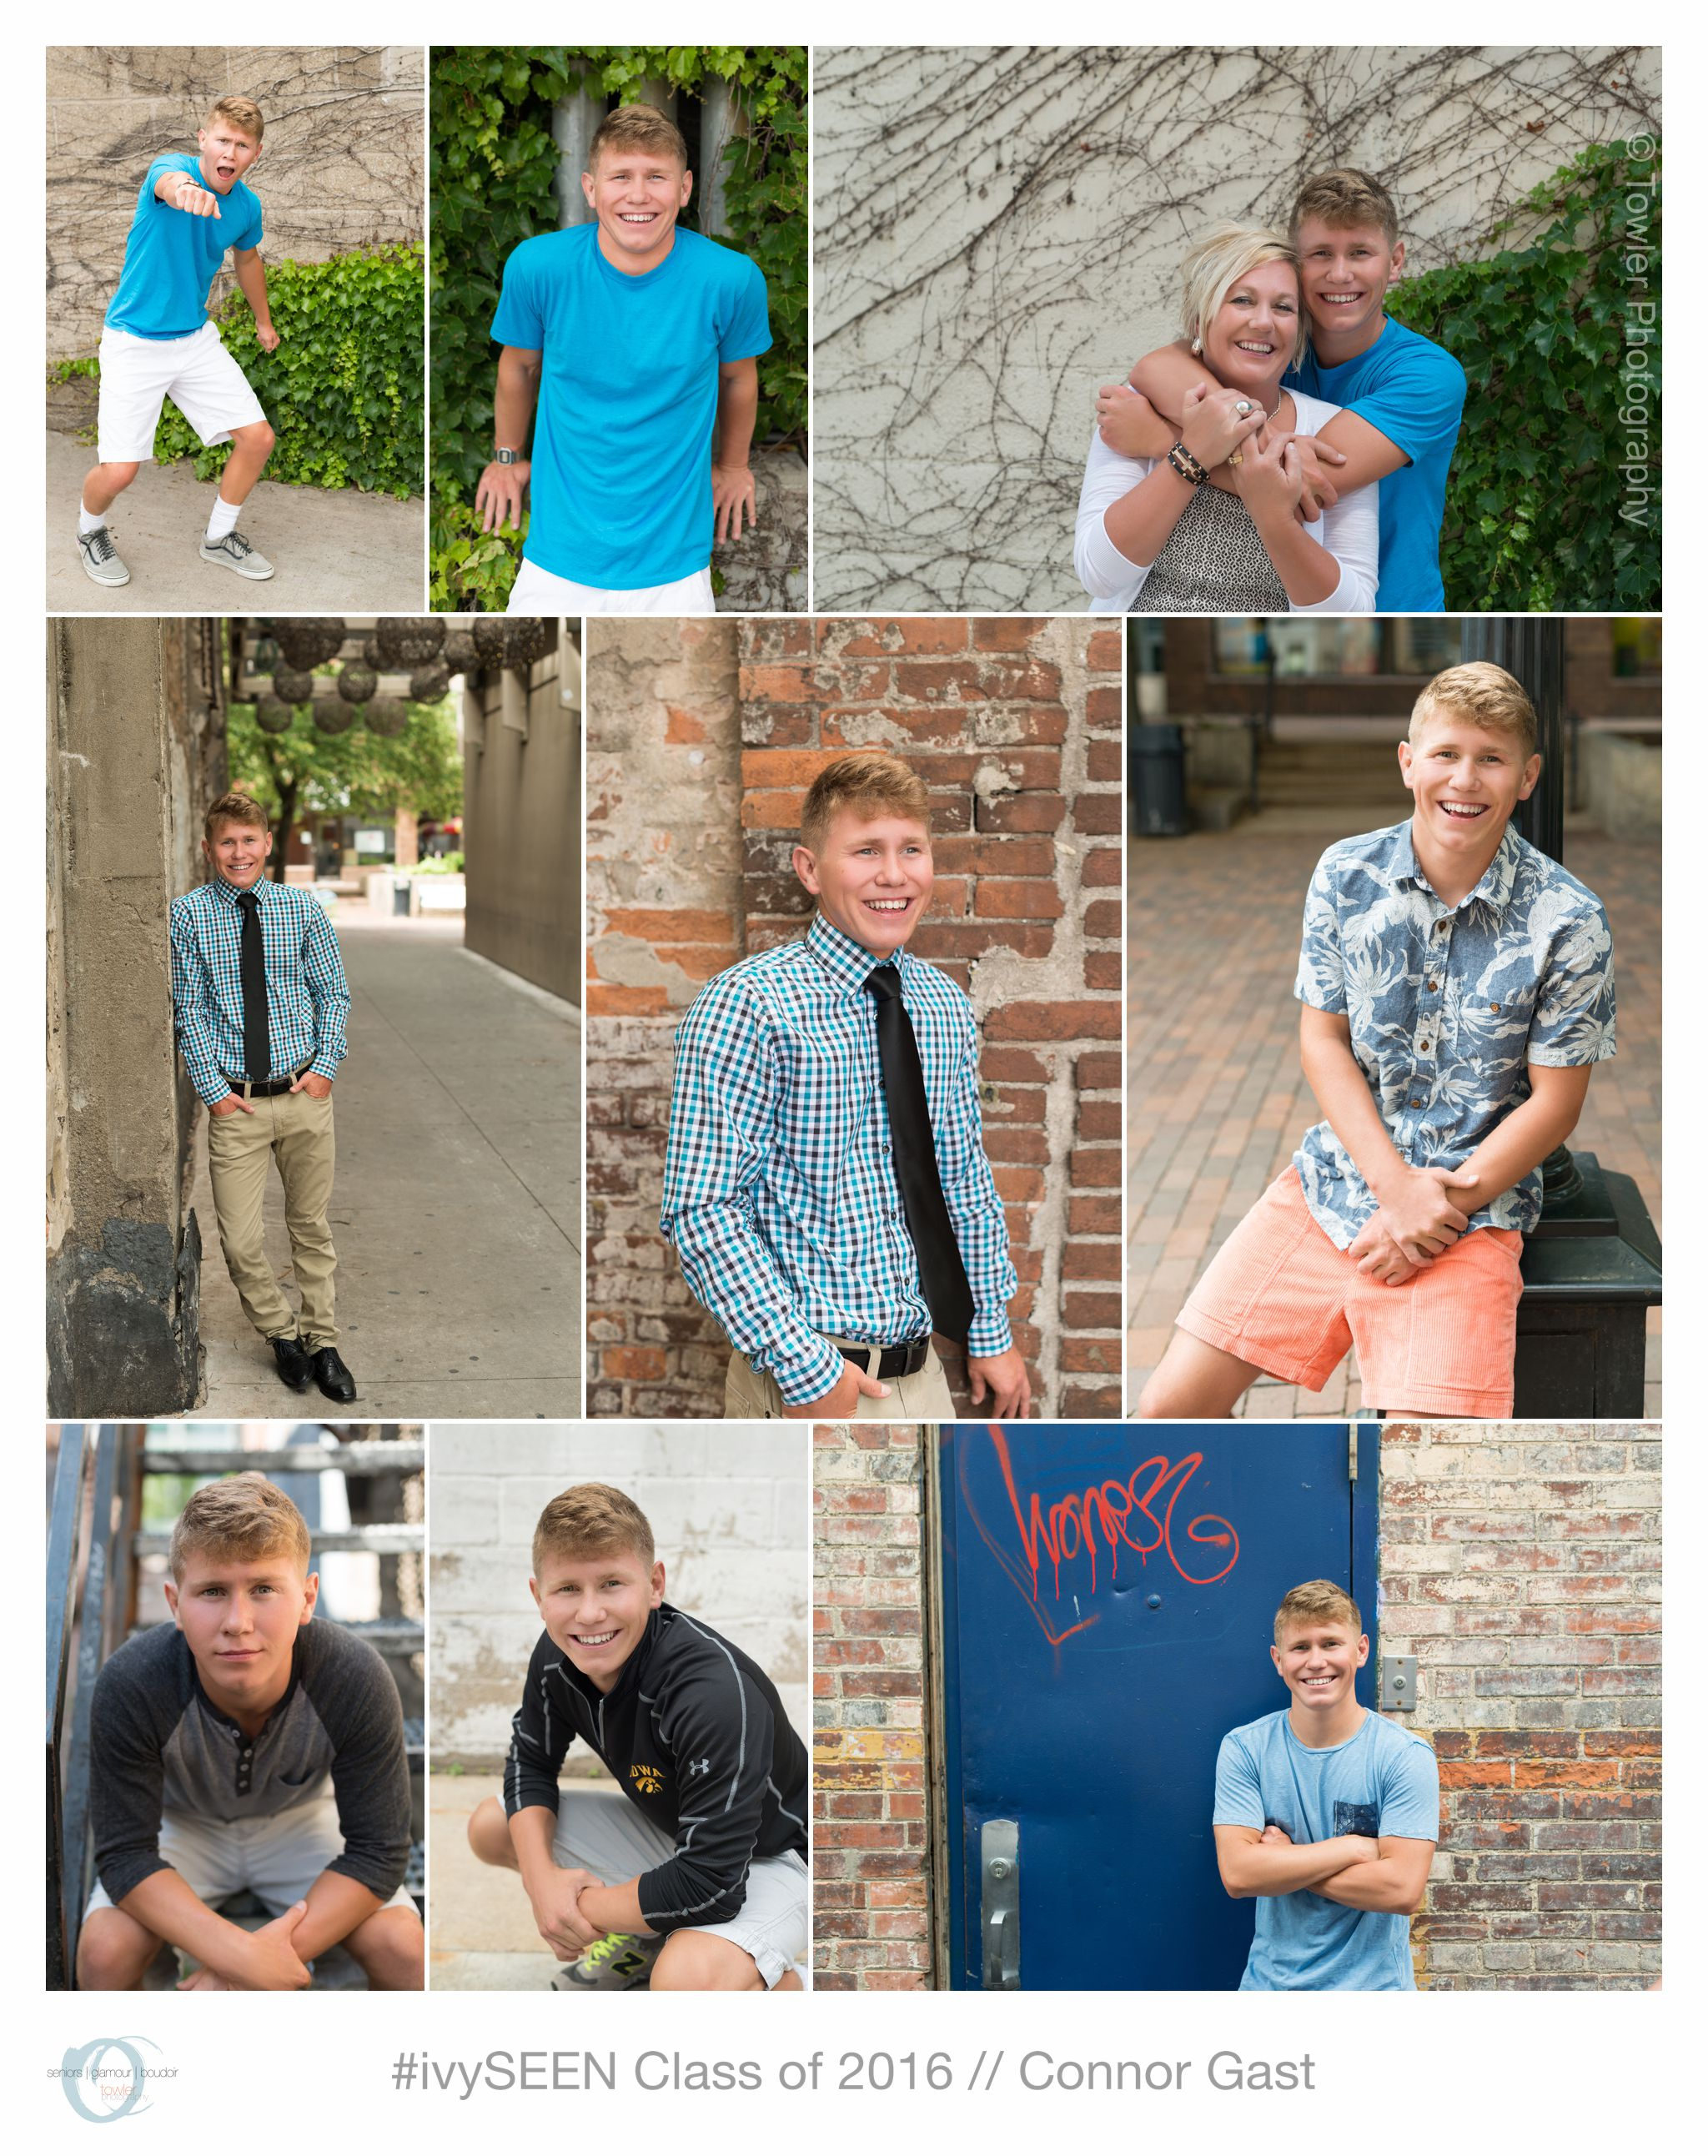 Connor Gast Collage